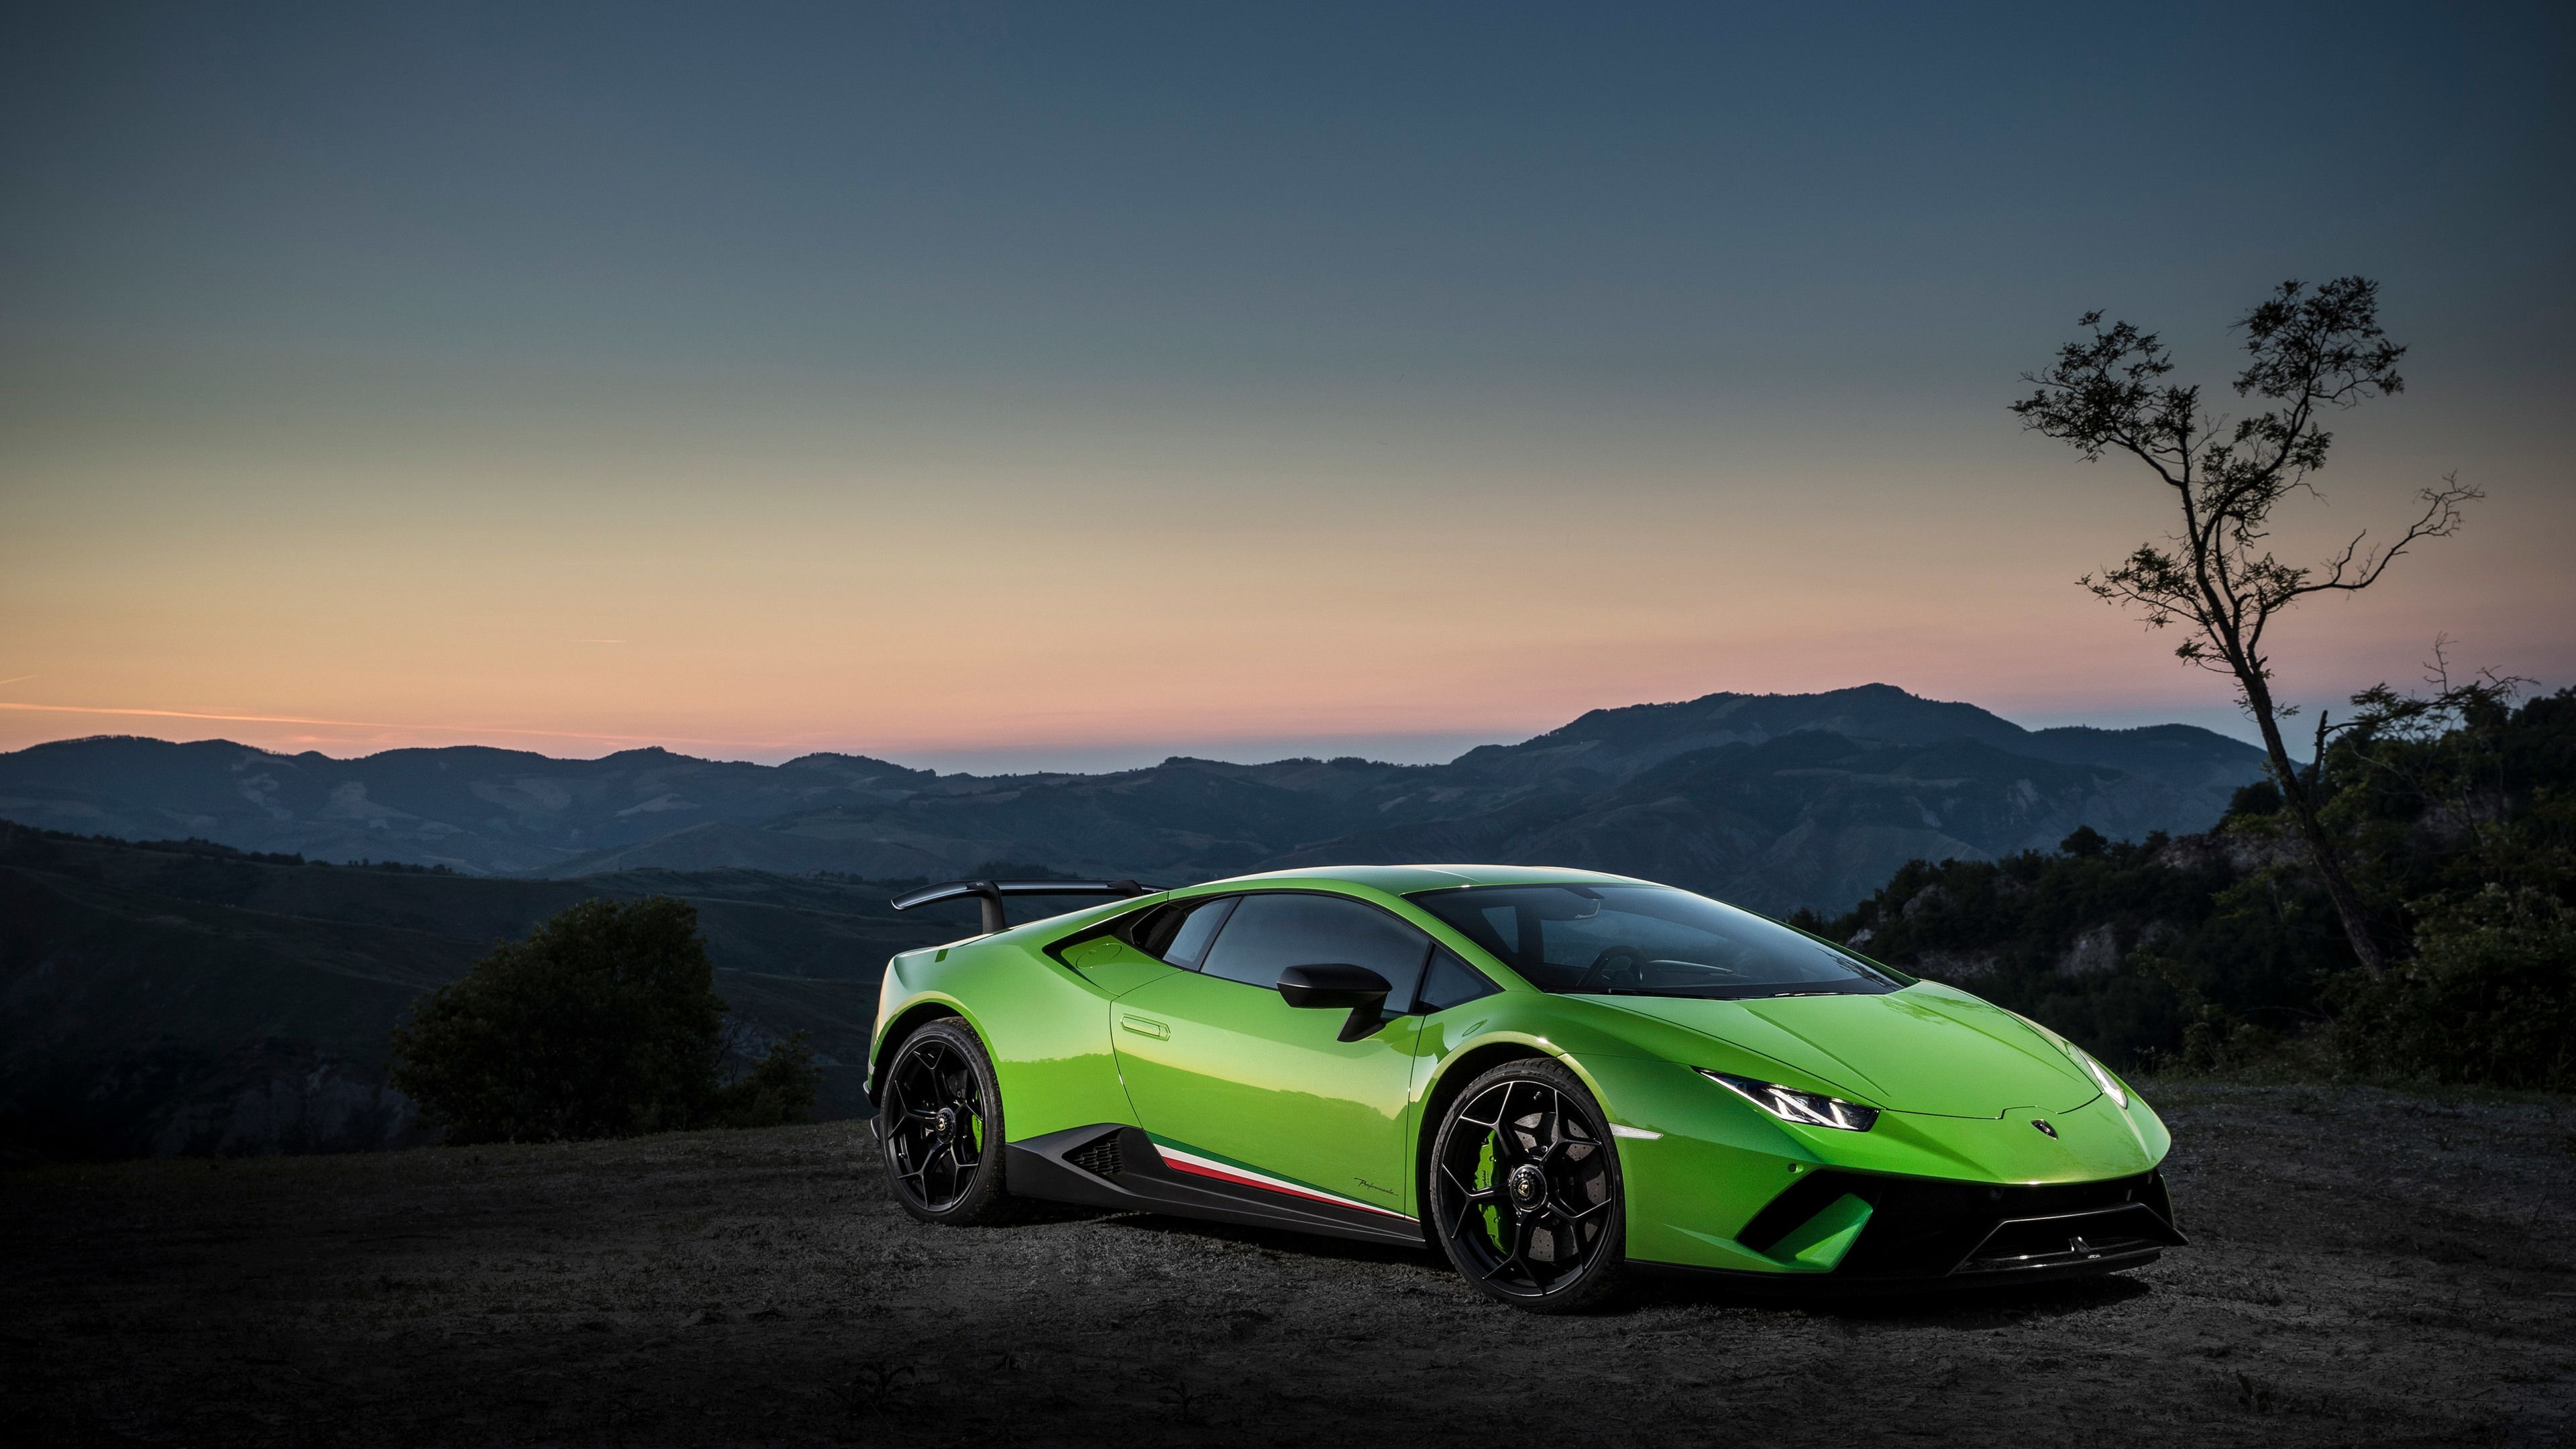 4k Lamborghini Huracan Performante Lamborghini Wallpapers Lamborghini Huracan Wallpapers Lambor Best Luxury Sports Car Lamborghini Huracan Sports Cars Luxury